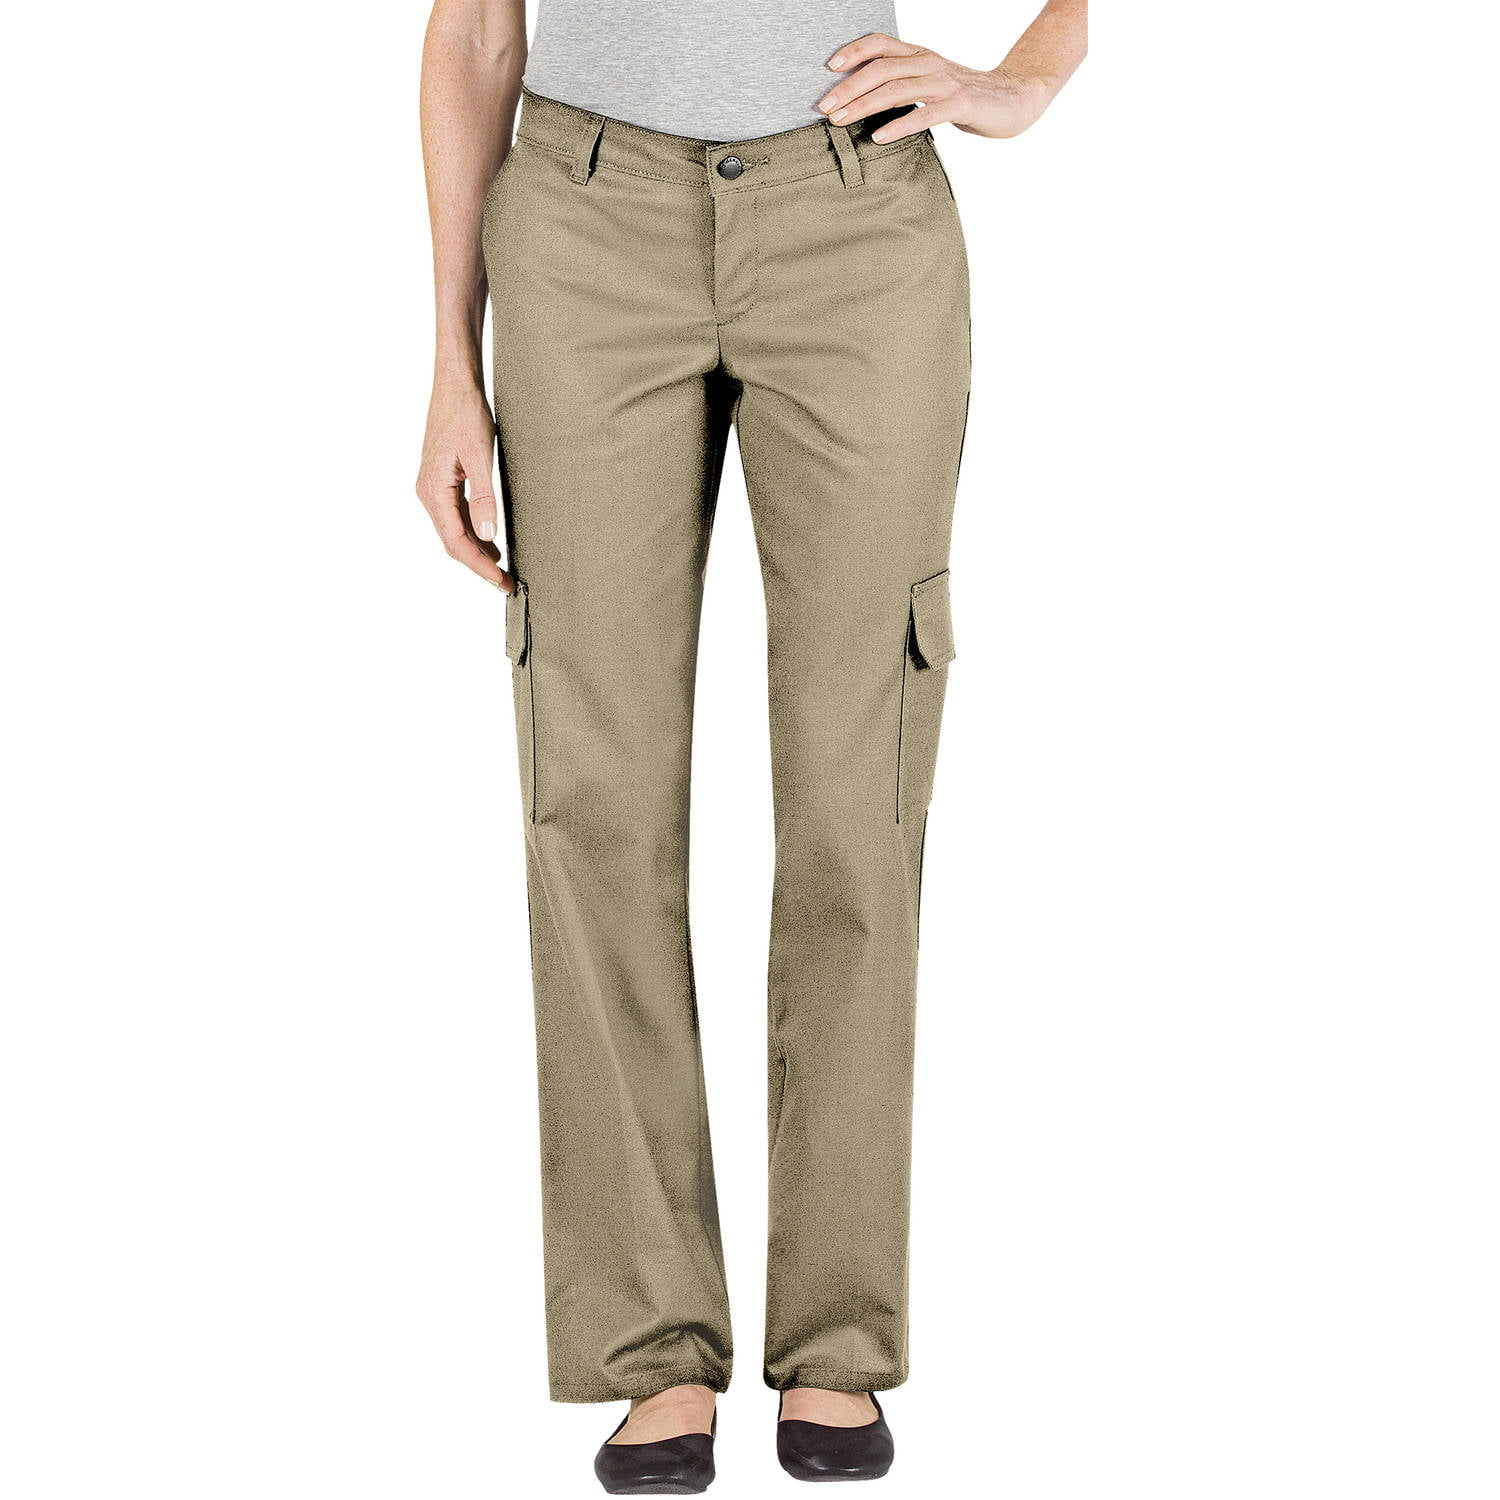 a57c7fdb805 Women's Relaxed Fit Straight Leg Cargo Pant